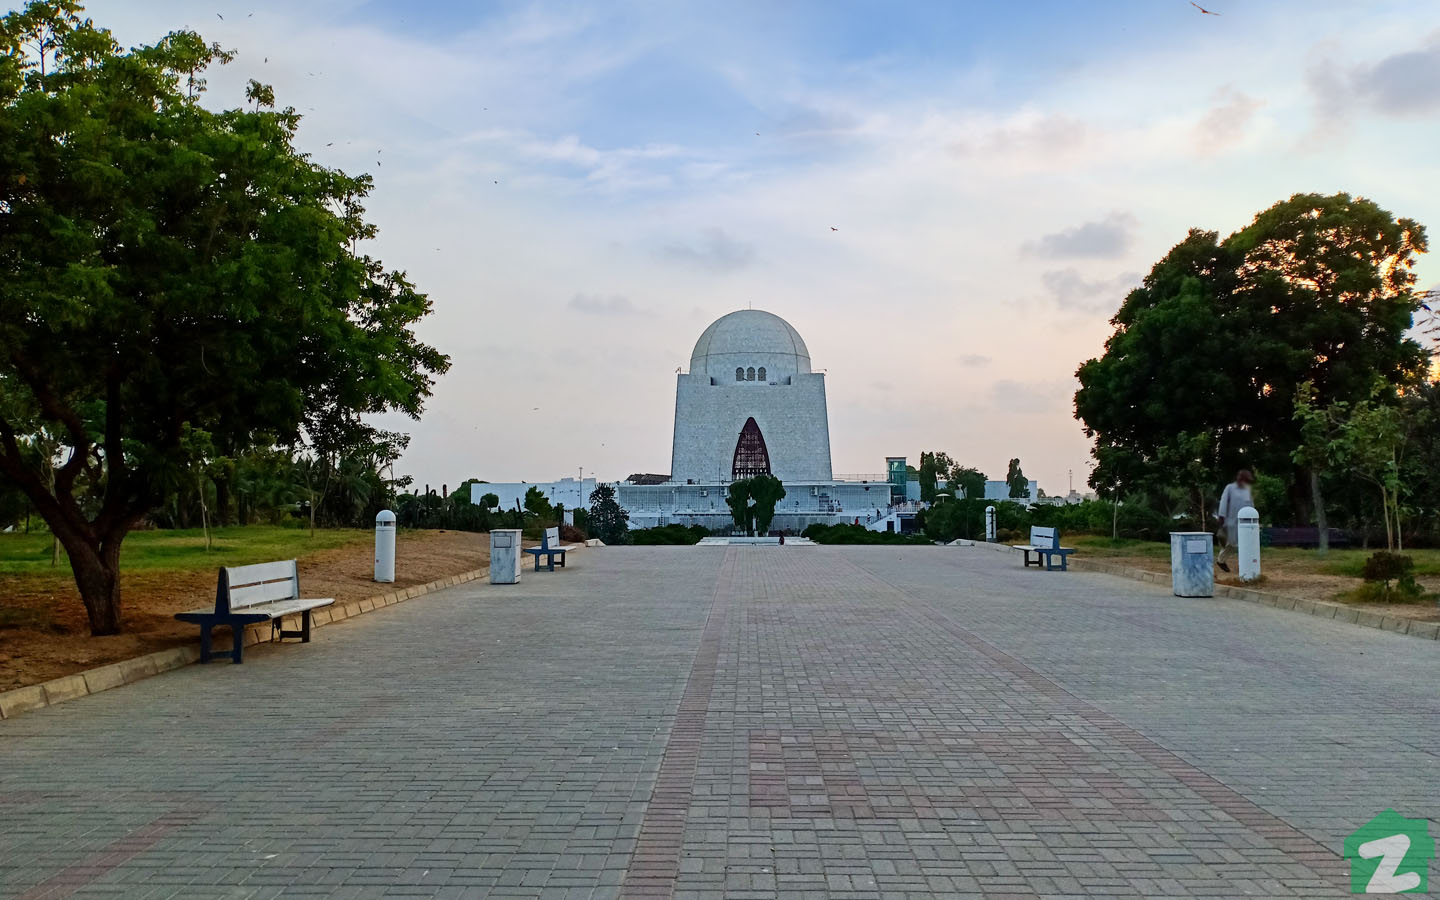 Mazar-e-Quaid is beautiful with its surrounding garden and marble structure.